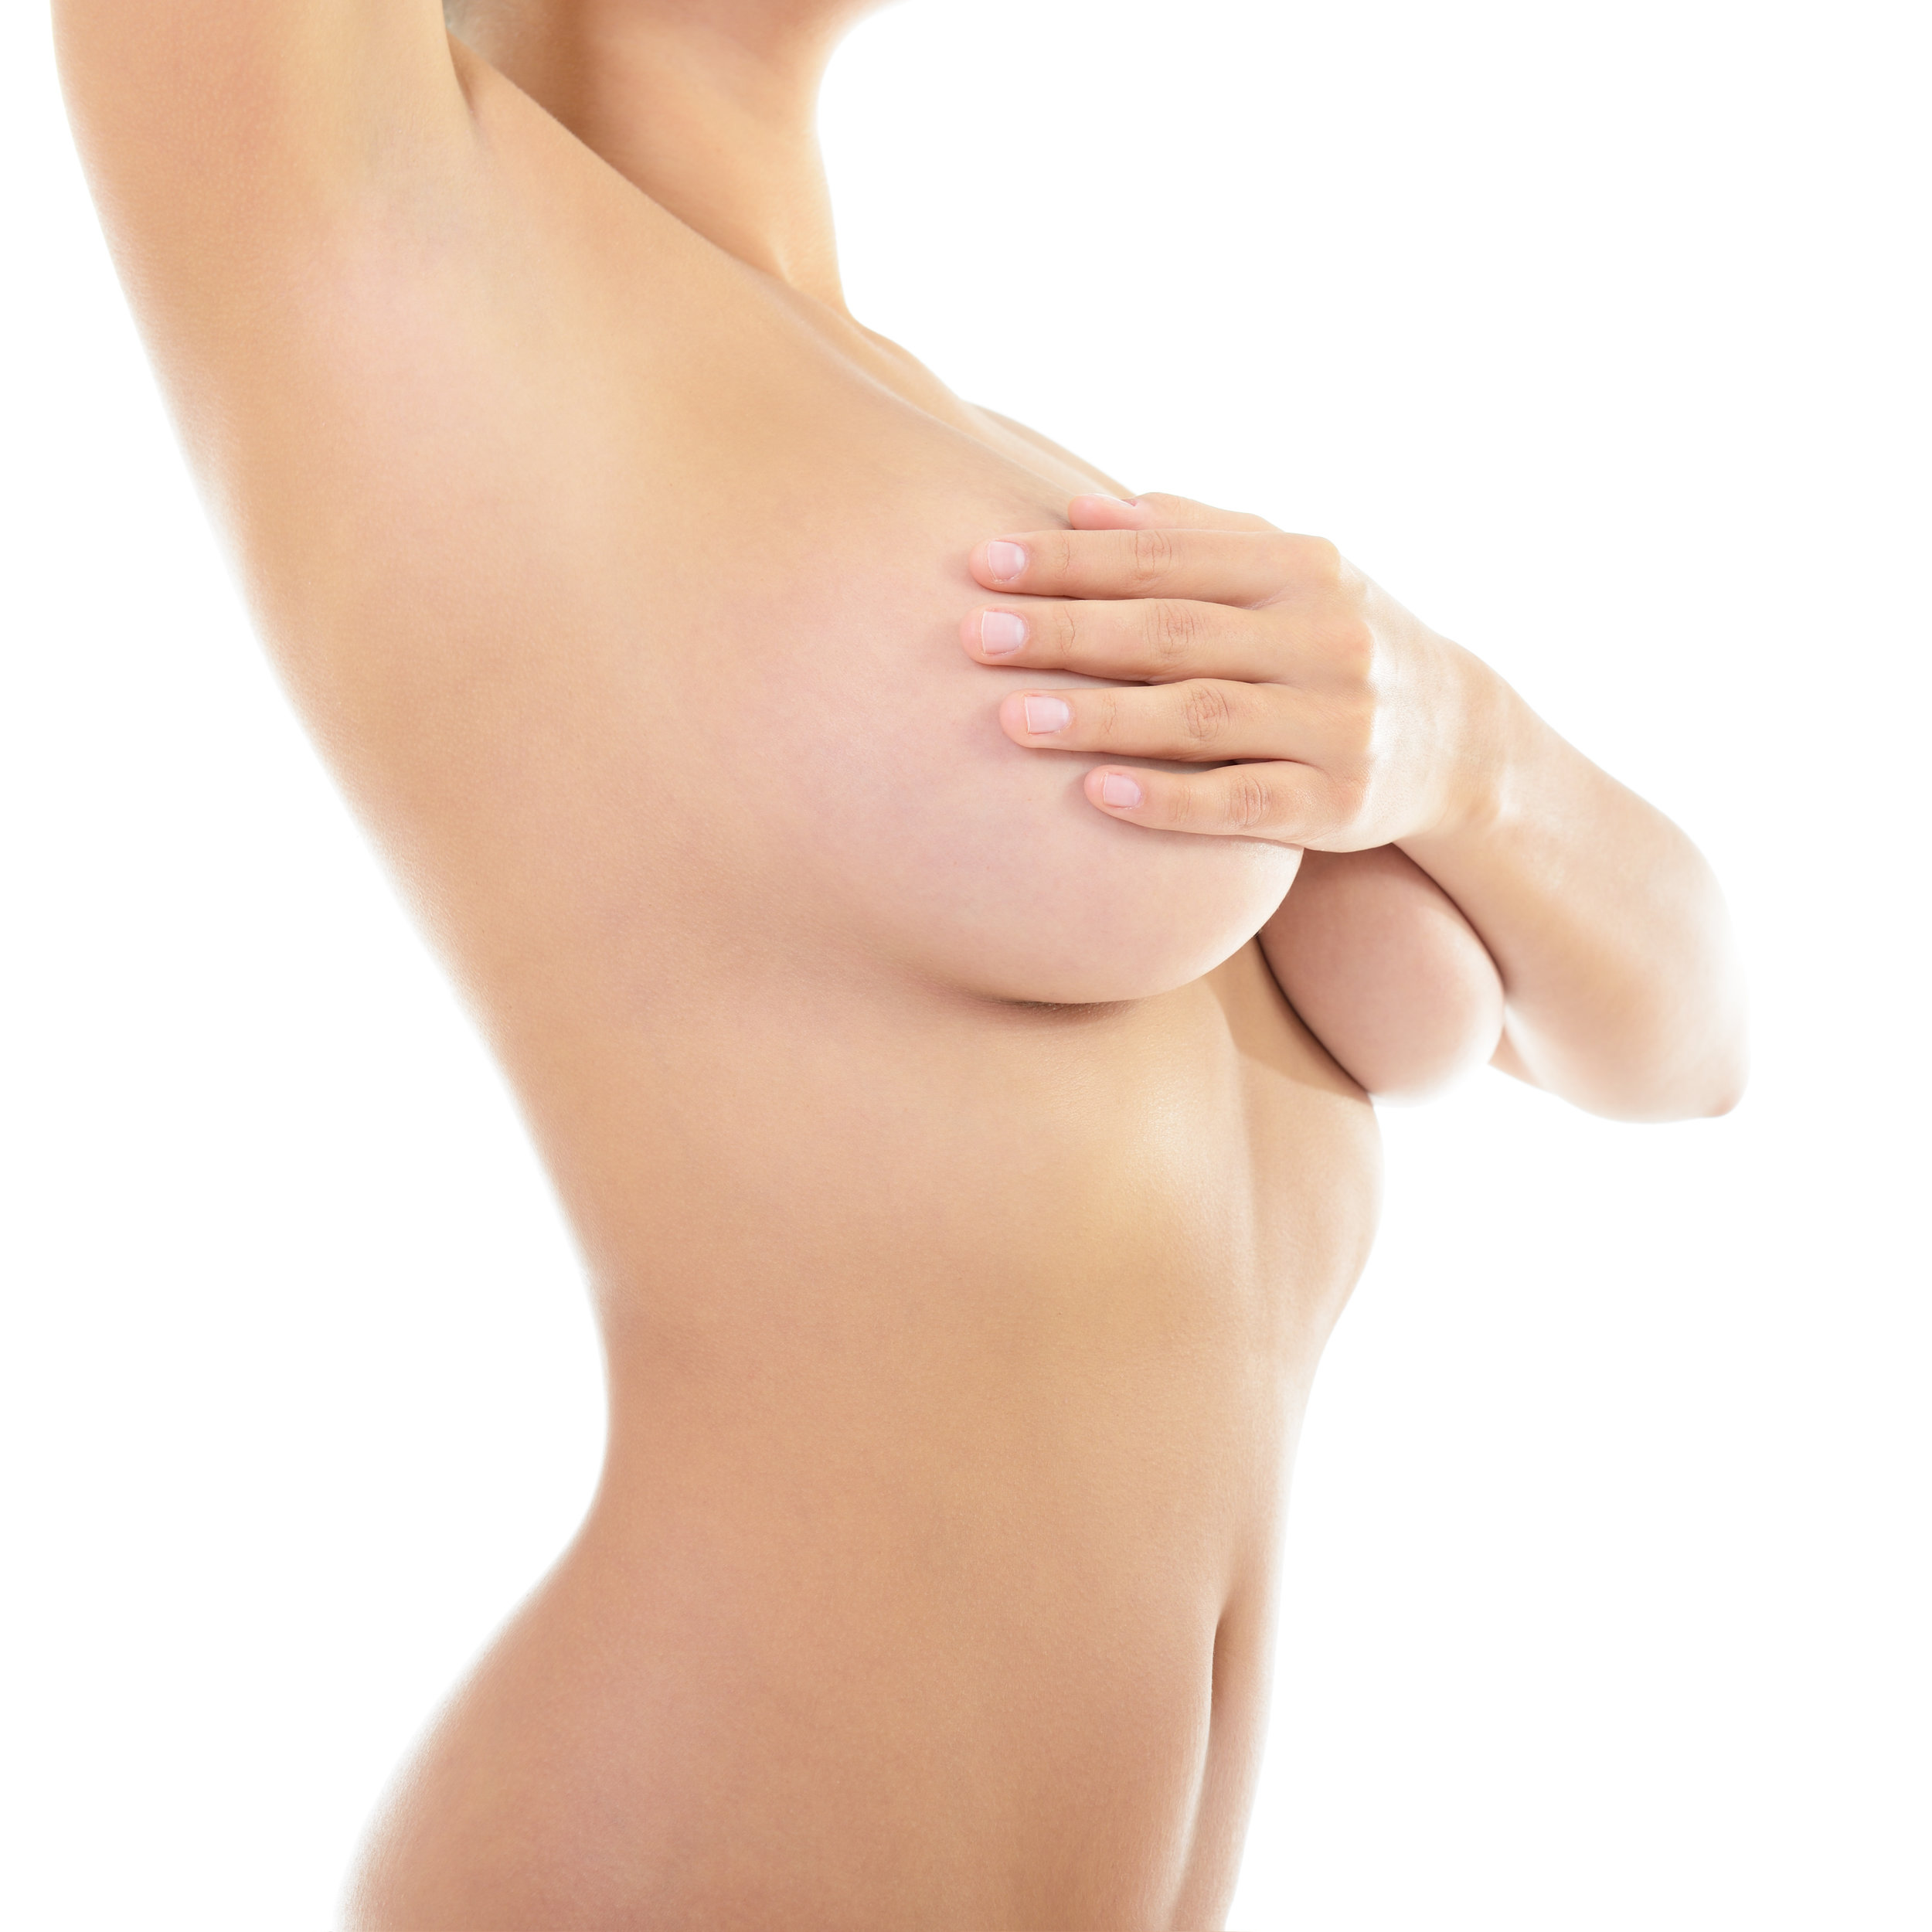 Breast Lift - A Breast Lift is designed to lift and reshape the breast. The normal appearance of the breast has the nipple and areola at the apex of the dome of the breast and pointing forward. In many cases as the breast loses elasticity the nipple and areola begin to face downward with a certain degree of stretched skin.Surgery: OutpatientEst. Surgery Time: 2 - 3 HoursRecovery: Walking is encouraged right away